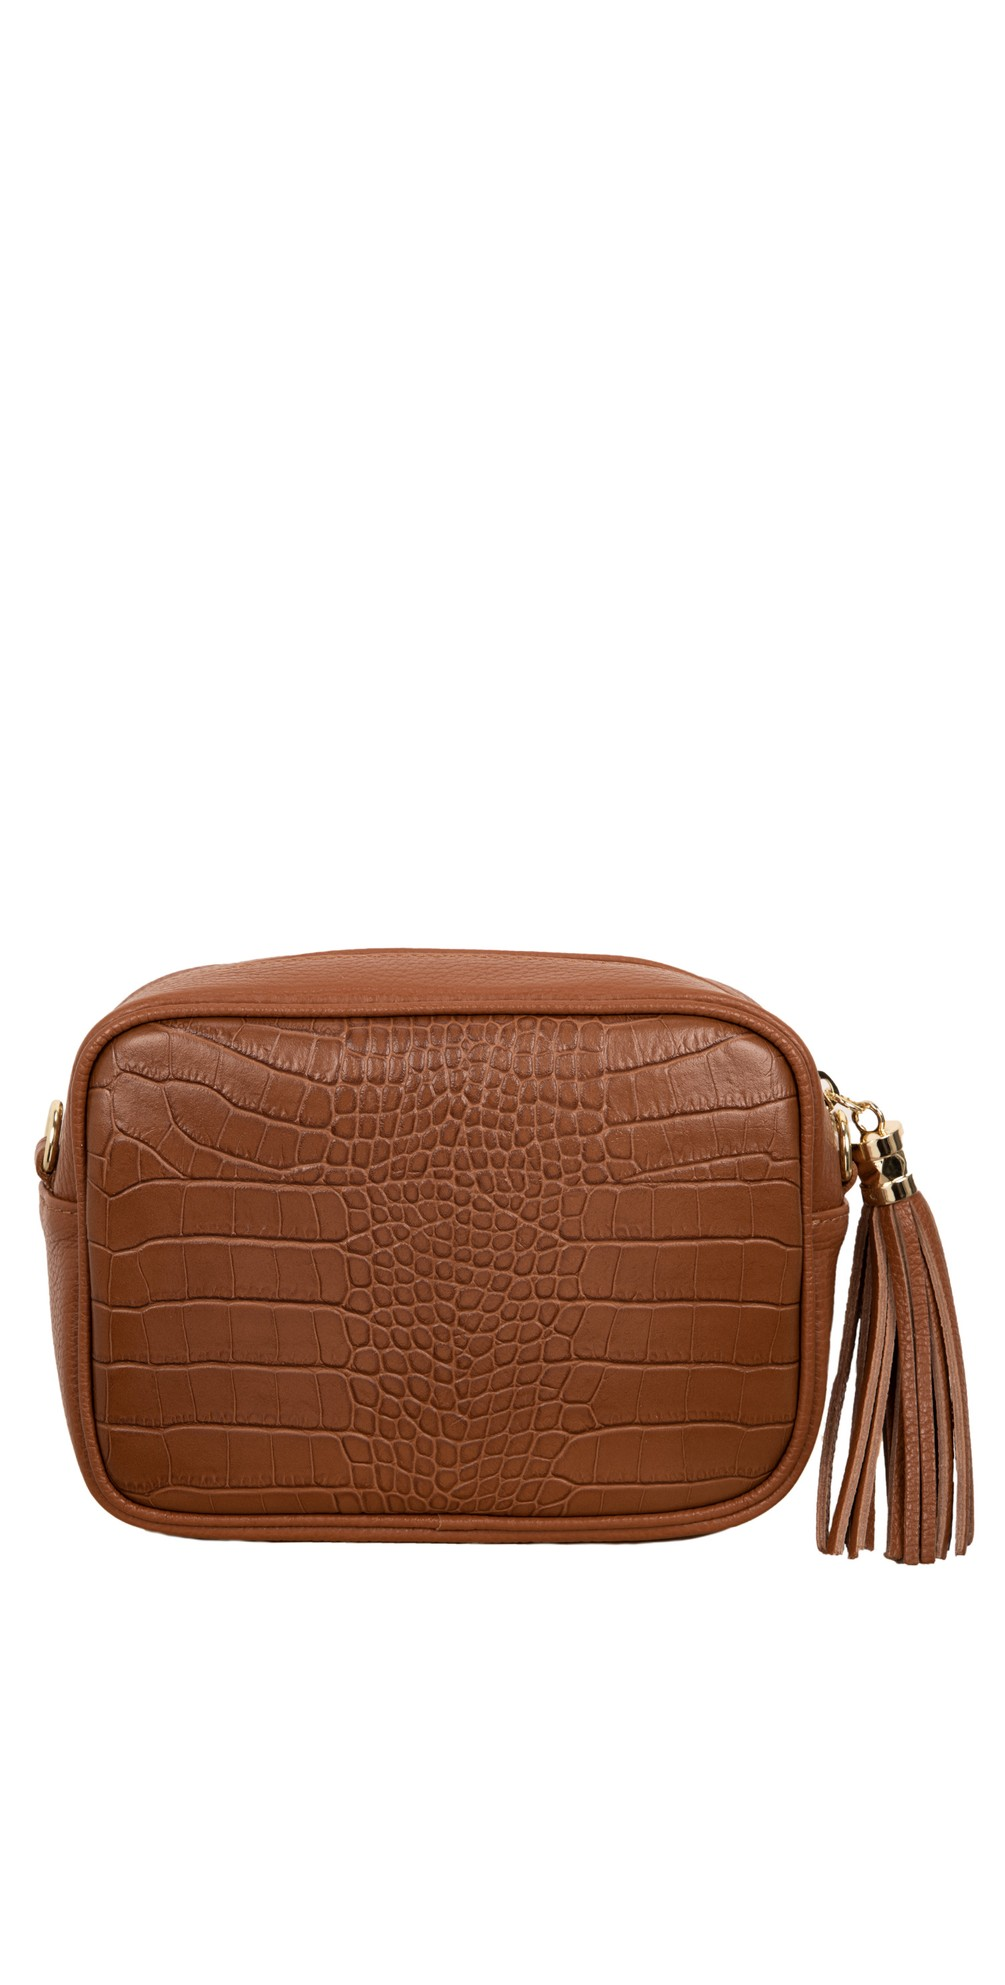 Connie Croc Cross Body bag main image